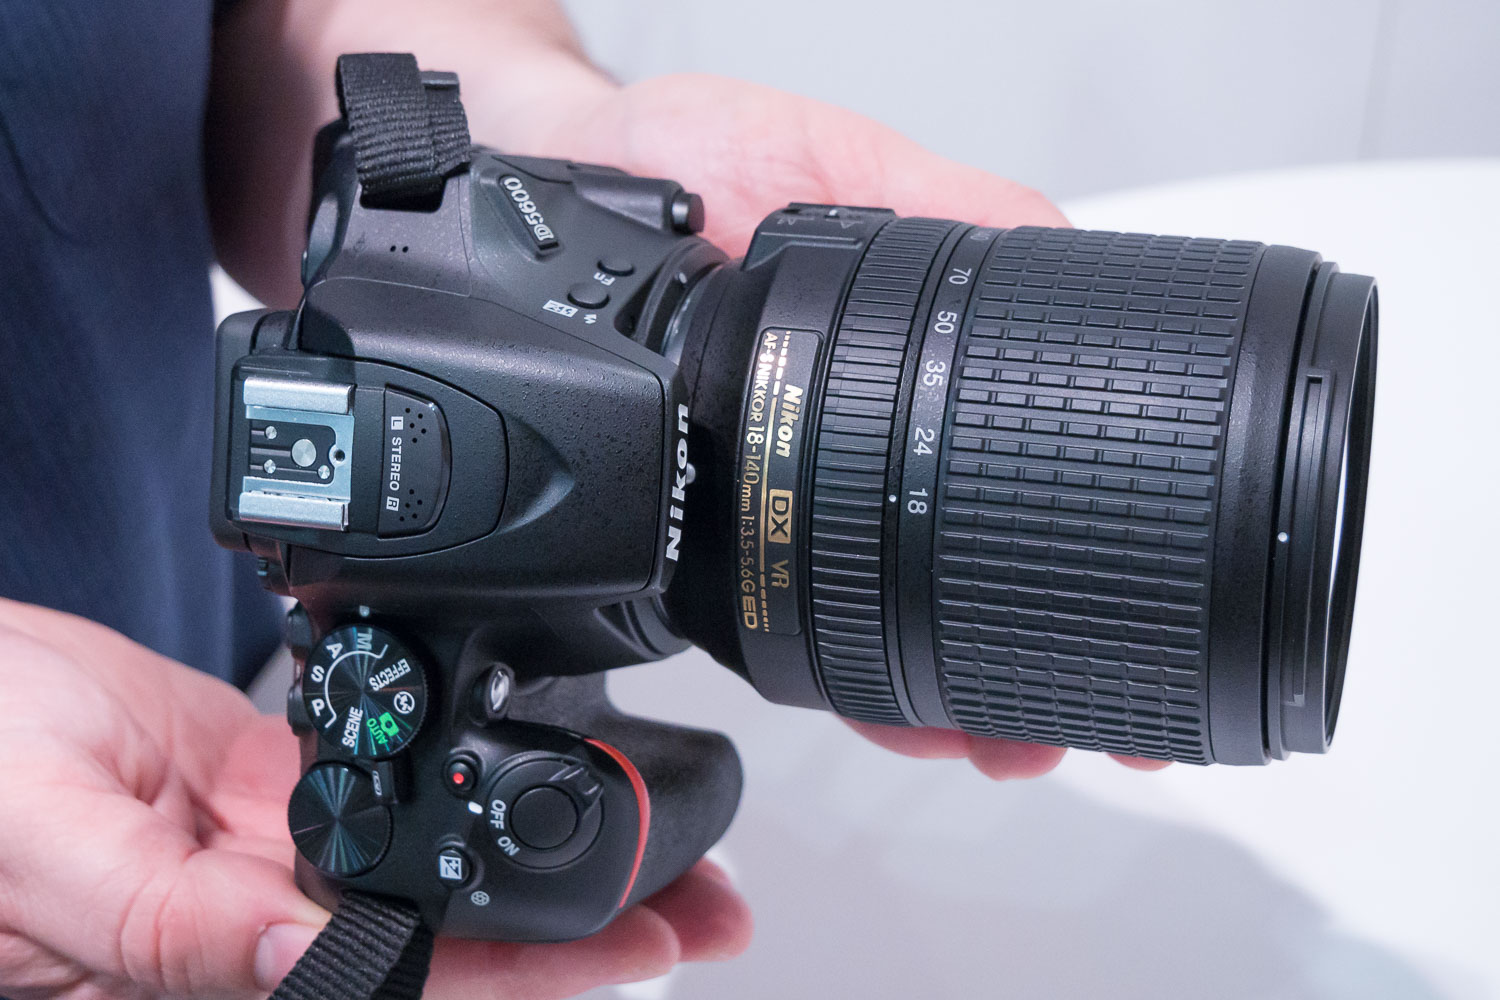 CES 2017: Hands-on with Nikon D5600 – My Digital Photography